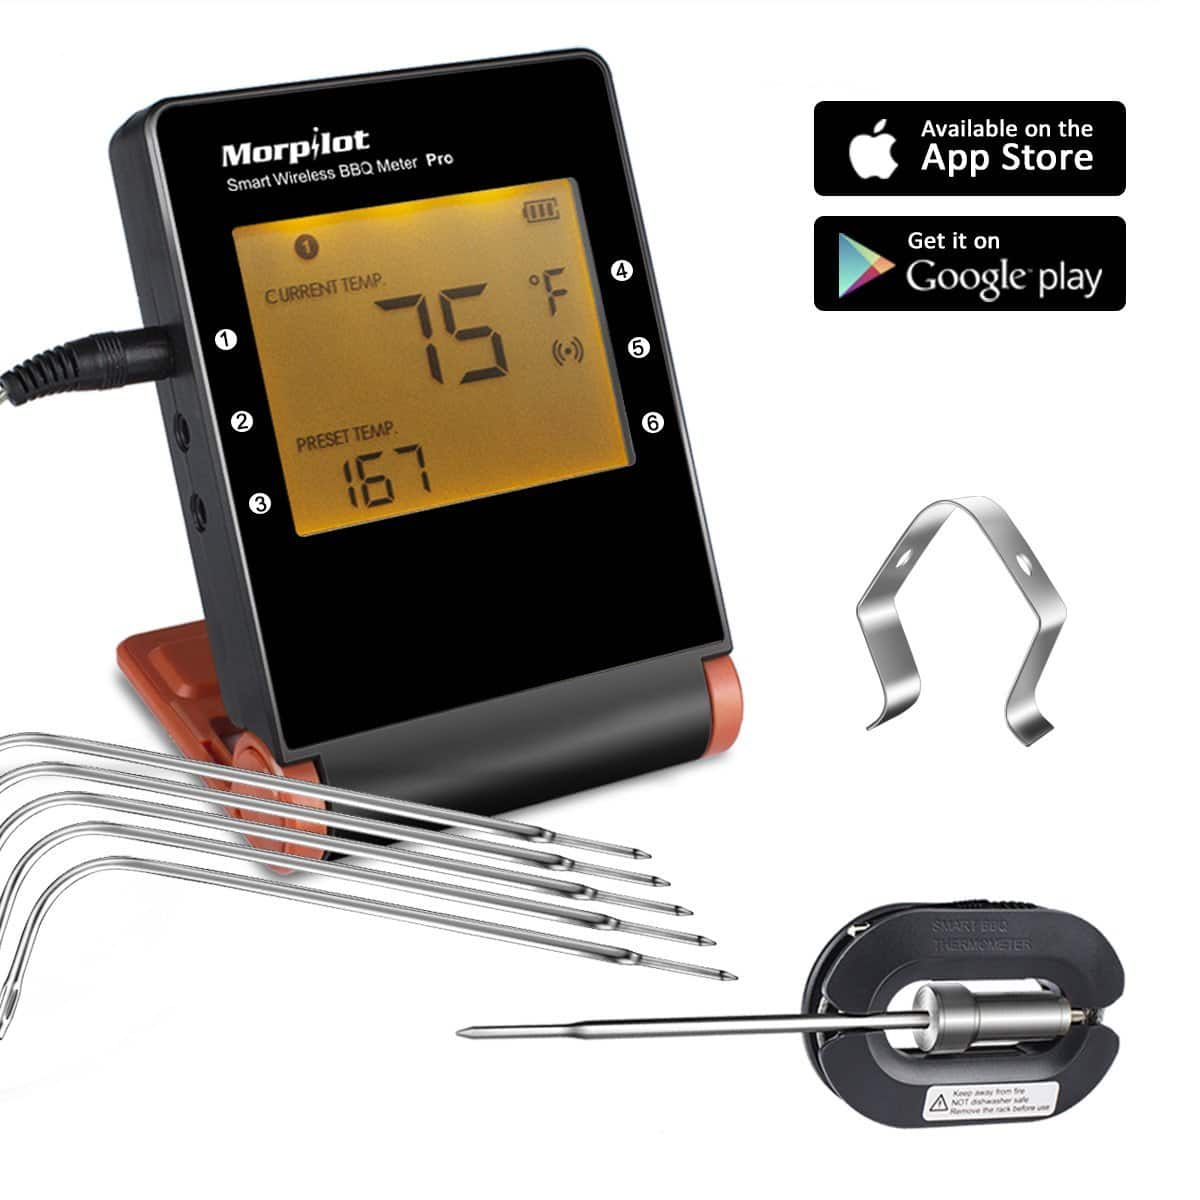 Morpilot Bluetooth Wireless Digital Thermometer w/ 6 Probes - Amazon's Choice! (Free Prime Shipping) $47.59